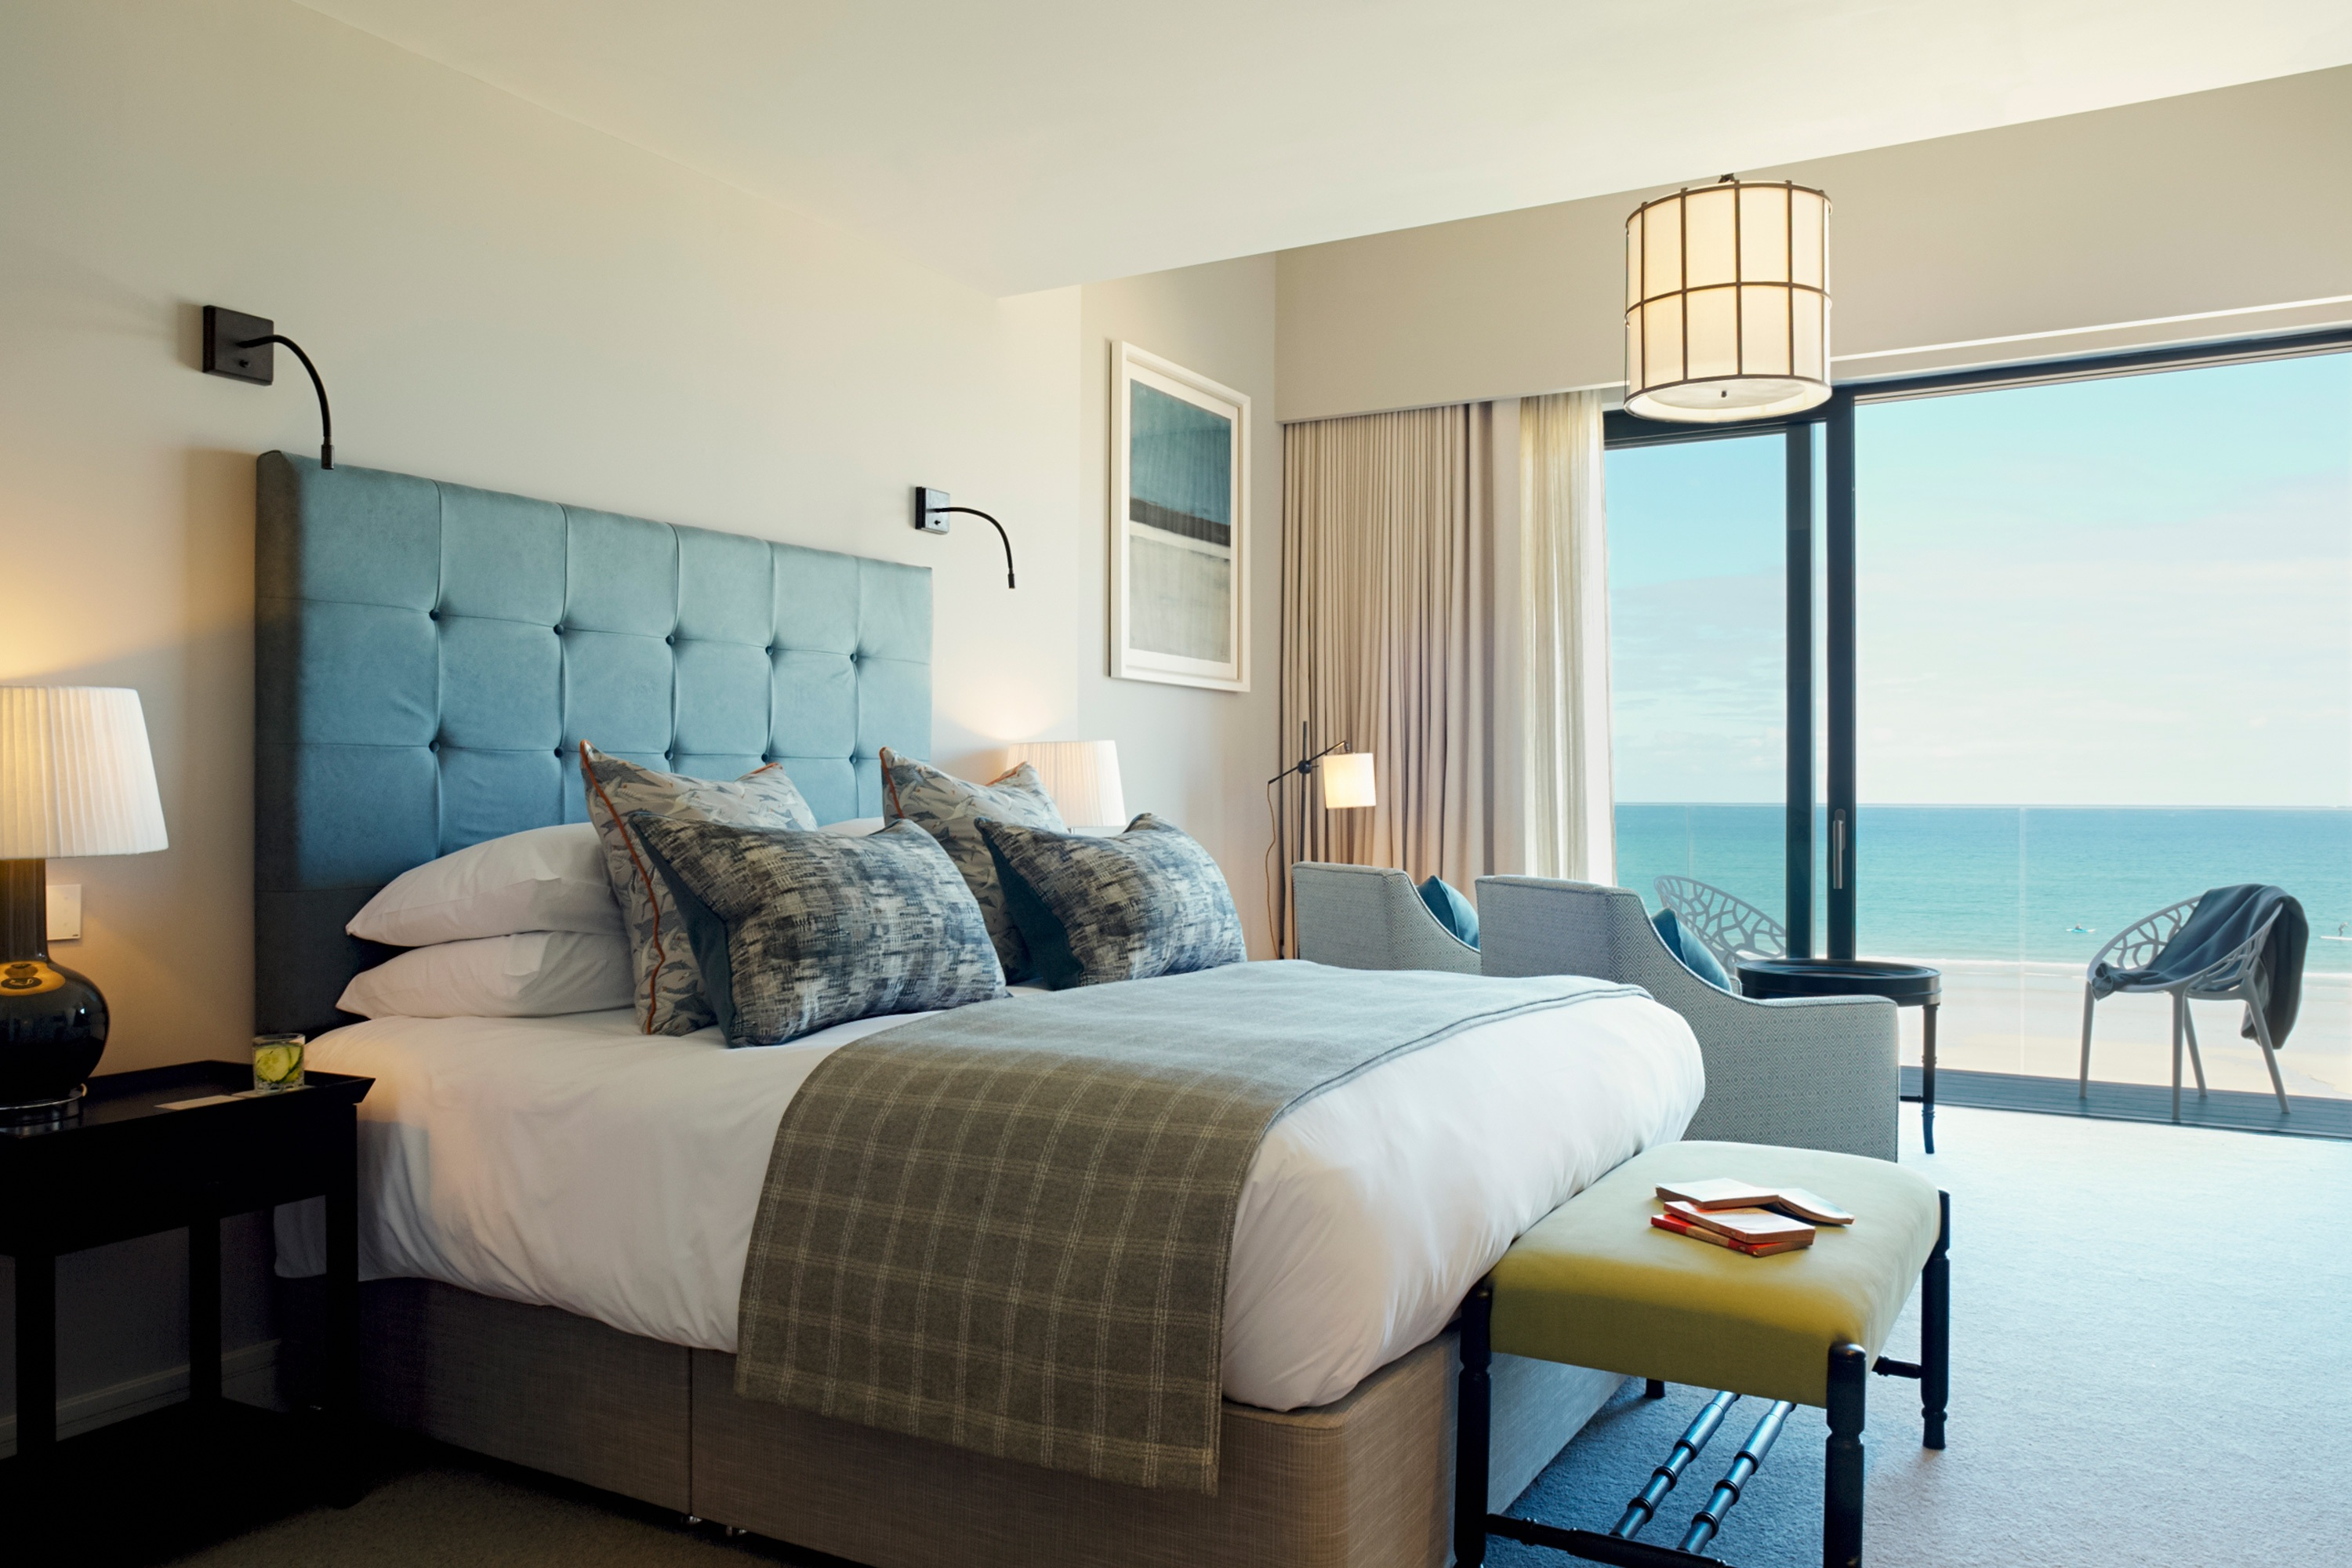 Double bed with glass doors to Carbis Bay beach.